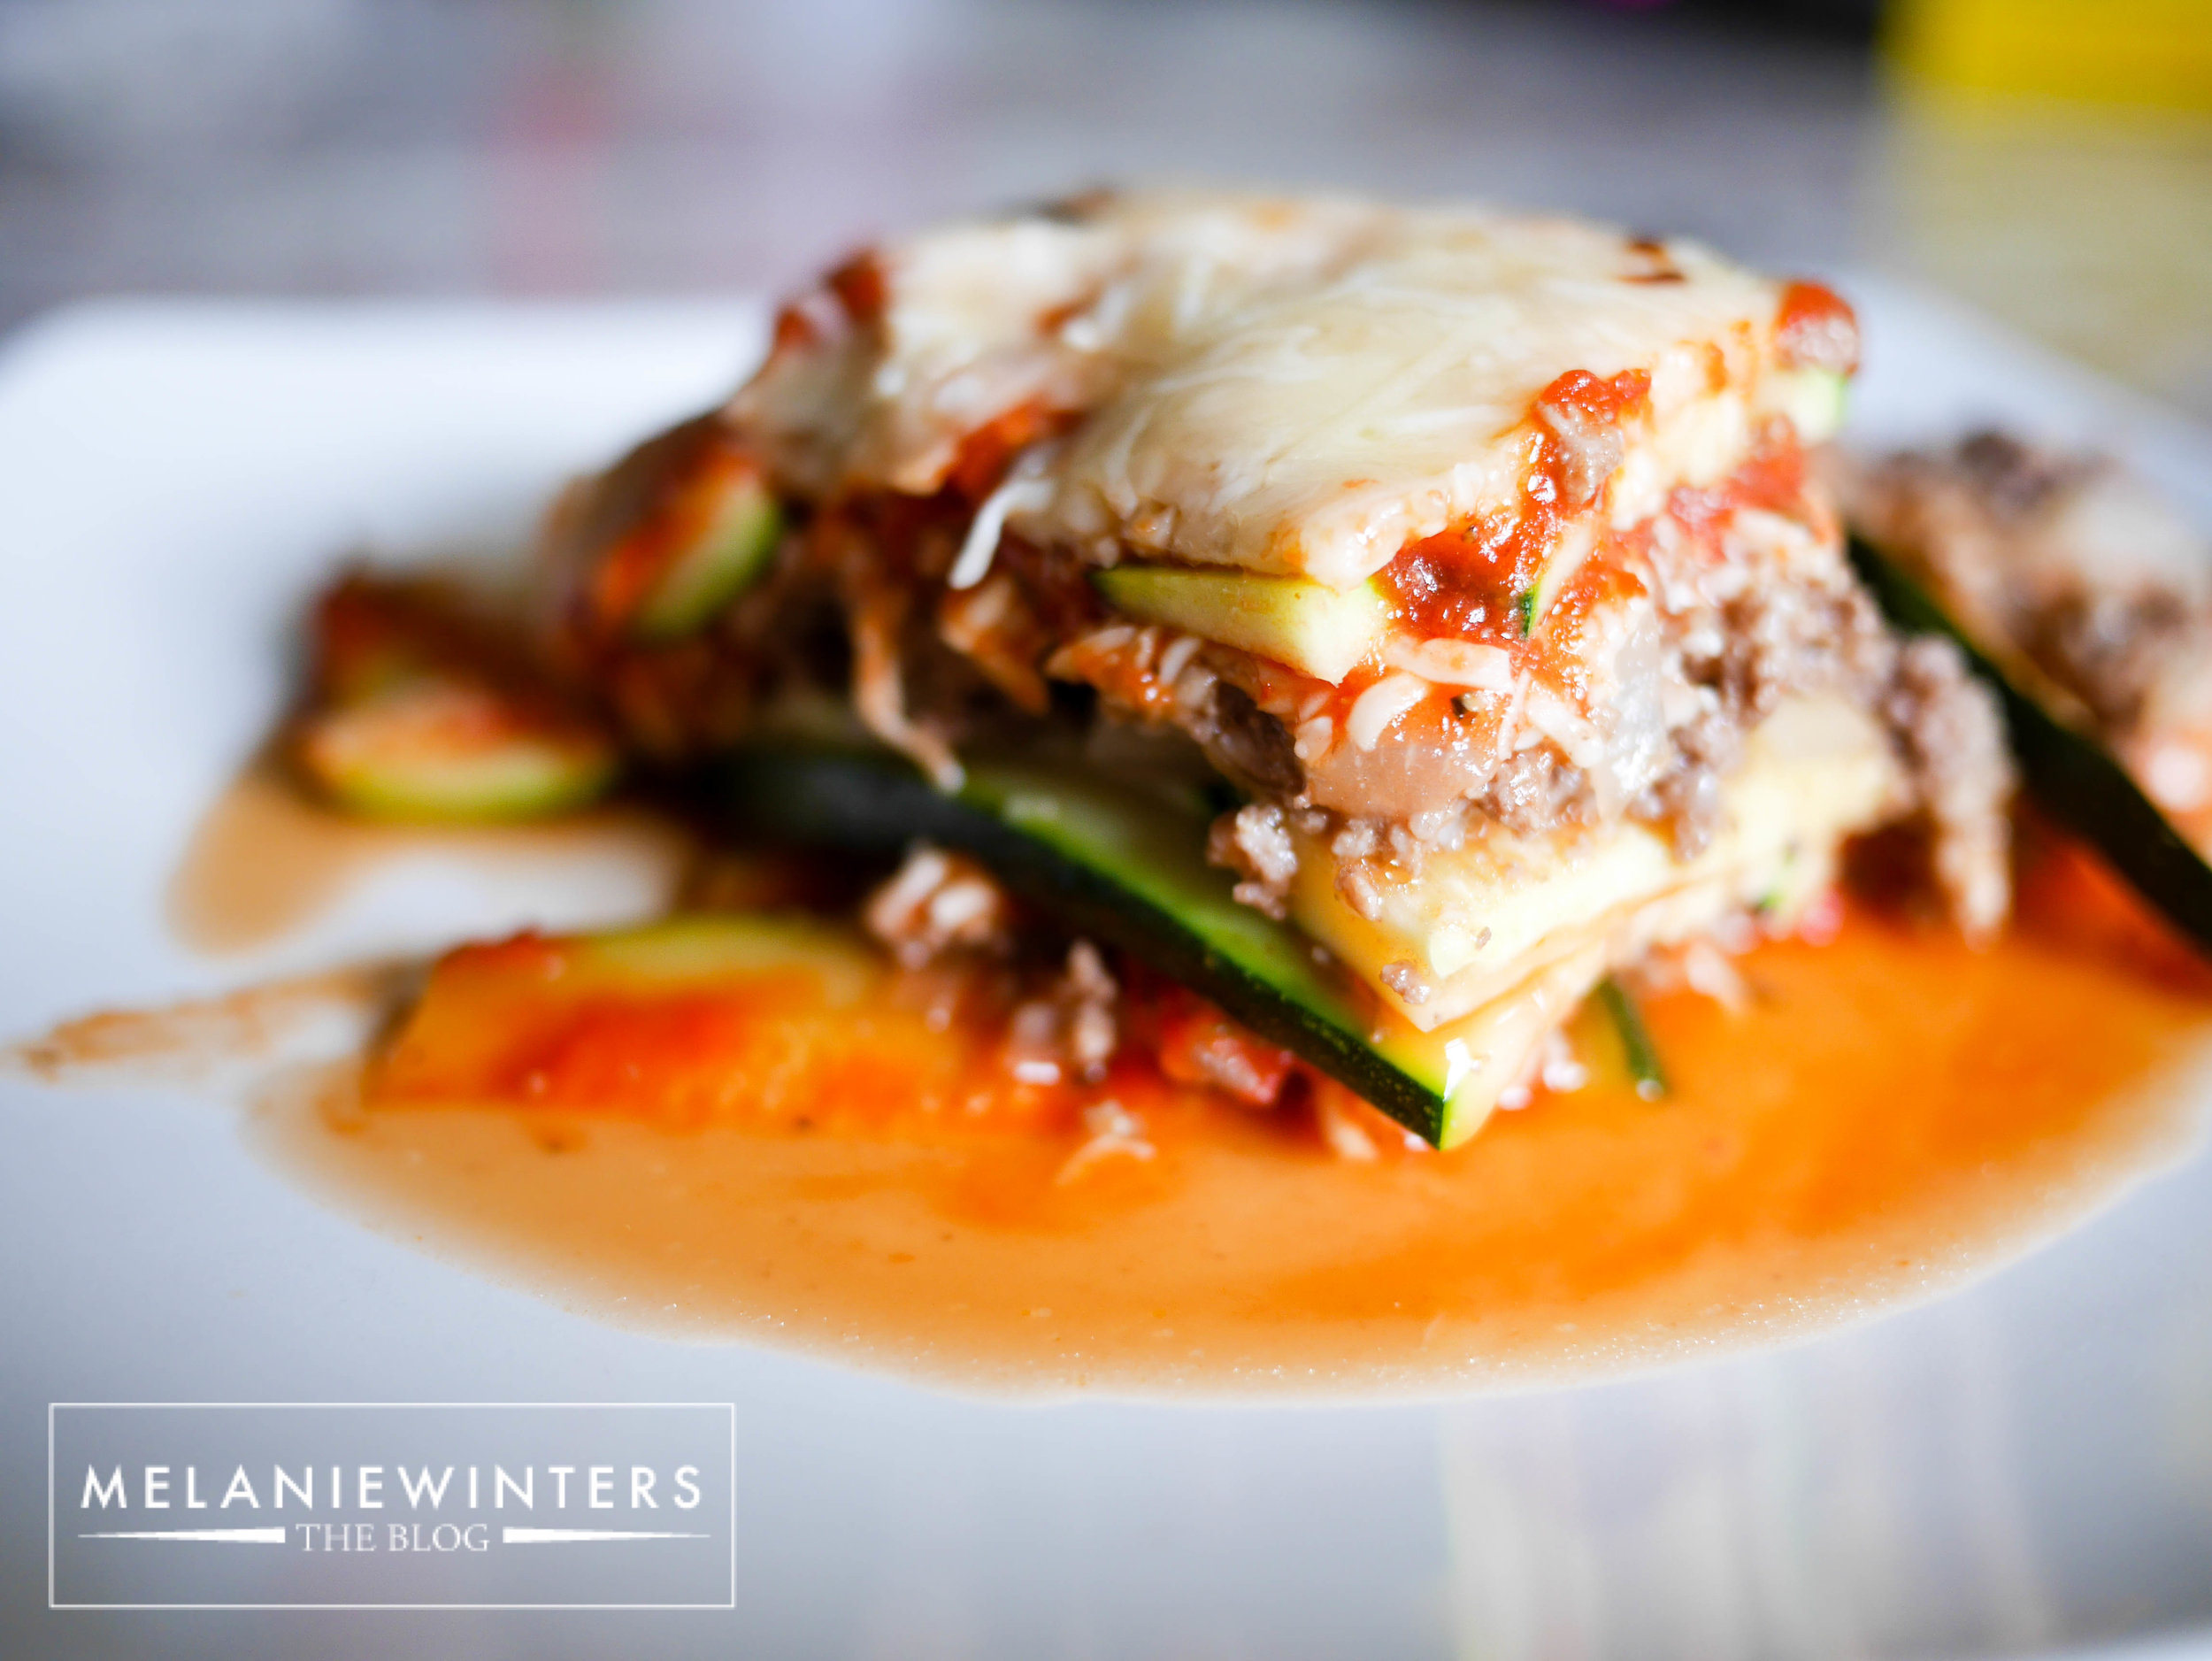 This semi-homemade zucchini lasagna is sure to be a low-carb staple in your meal plans.